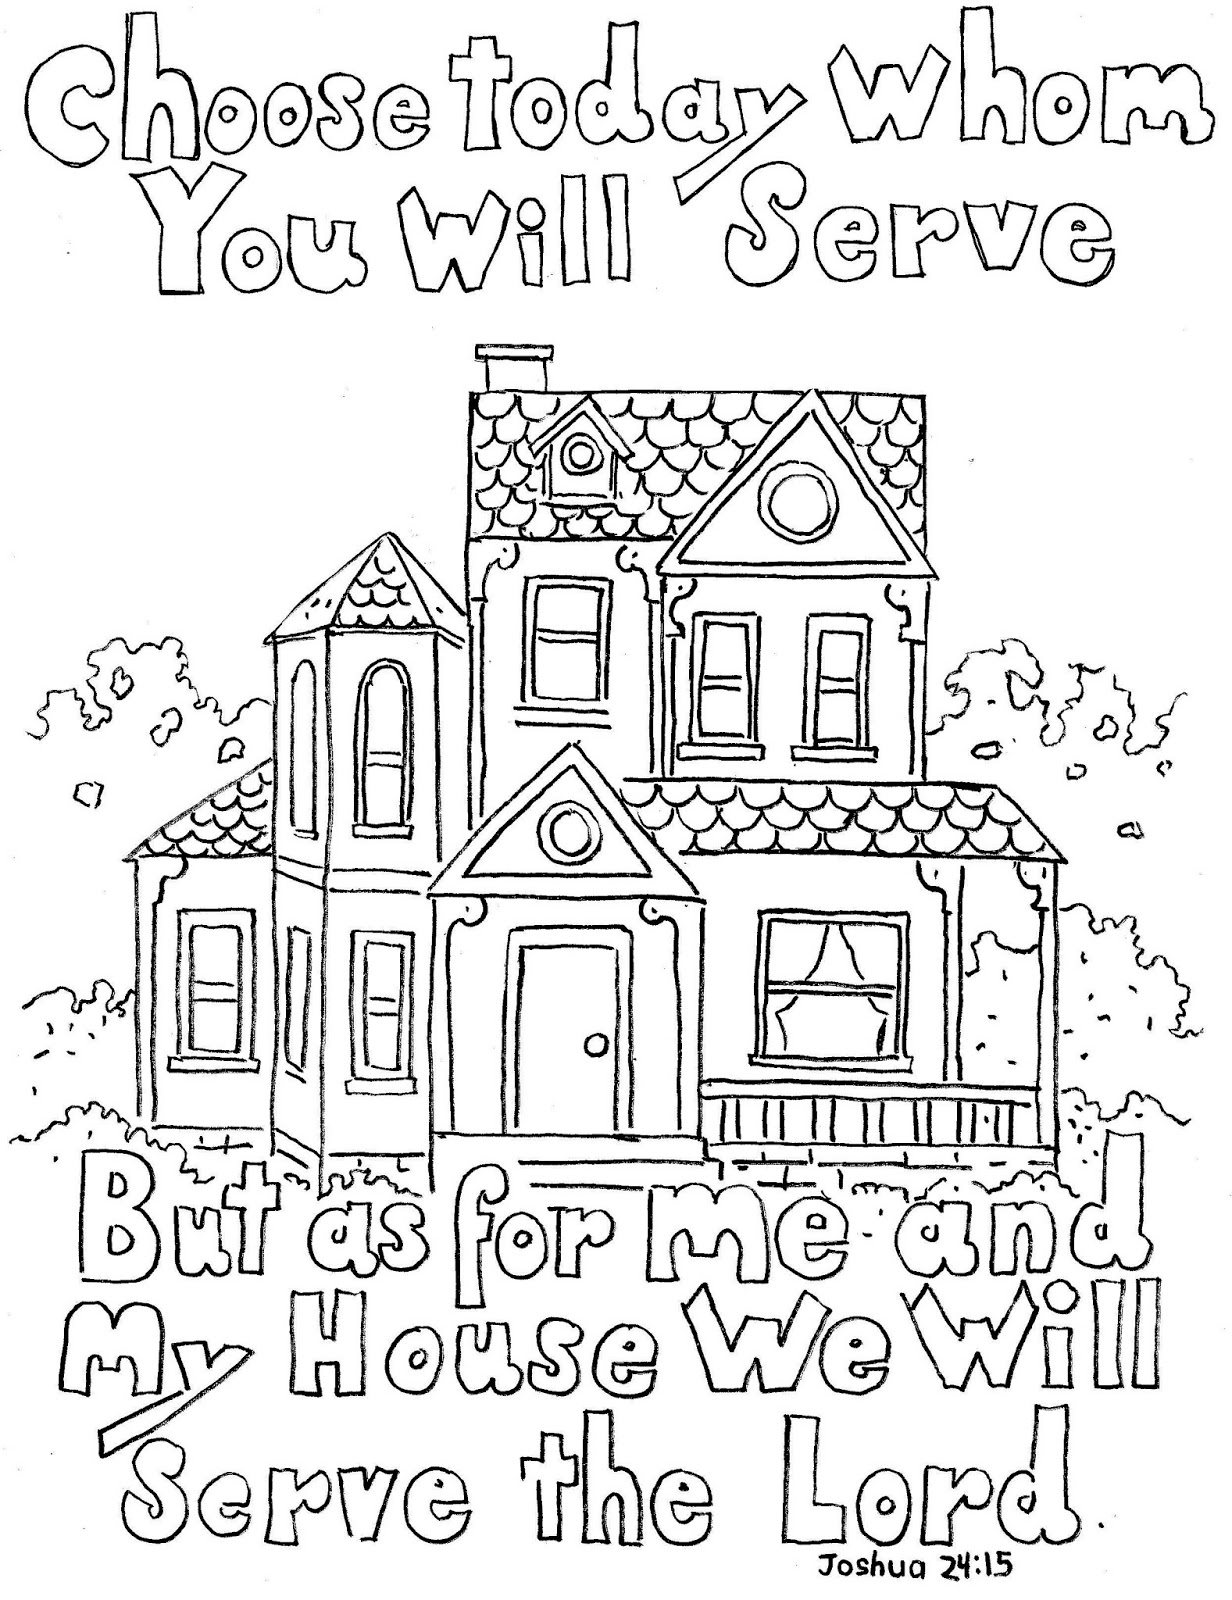 kjv bible verse coloring pages - photo#35